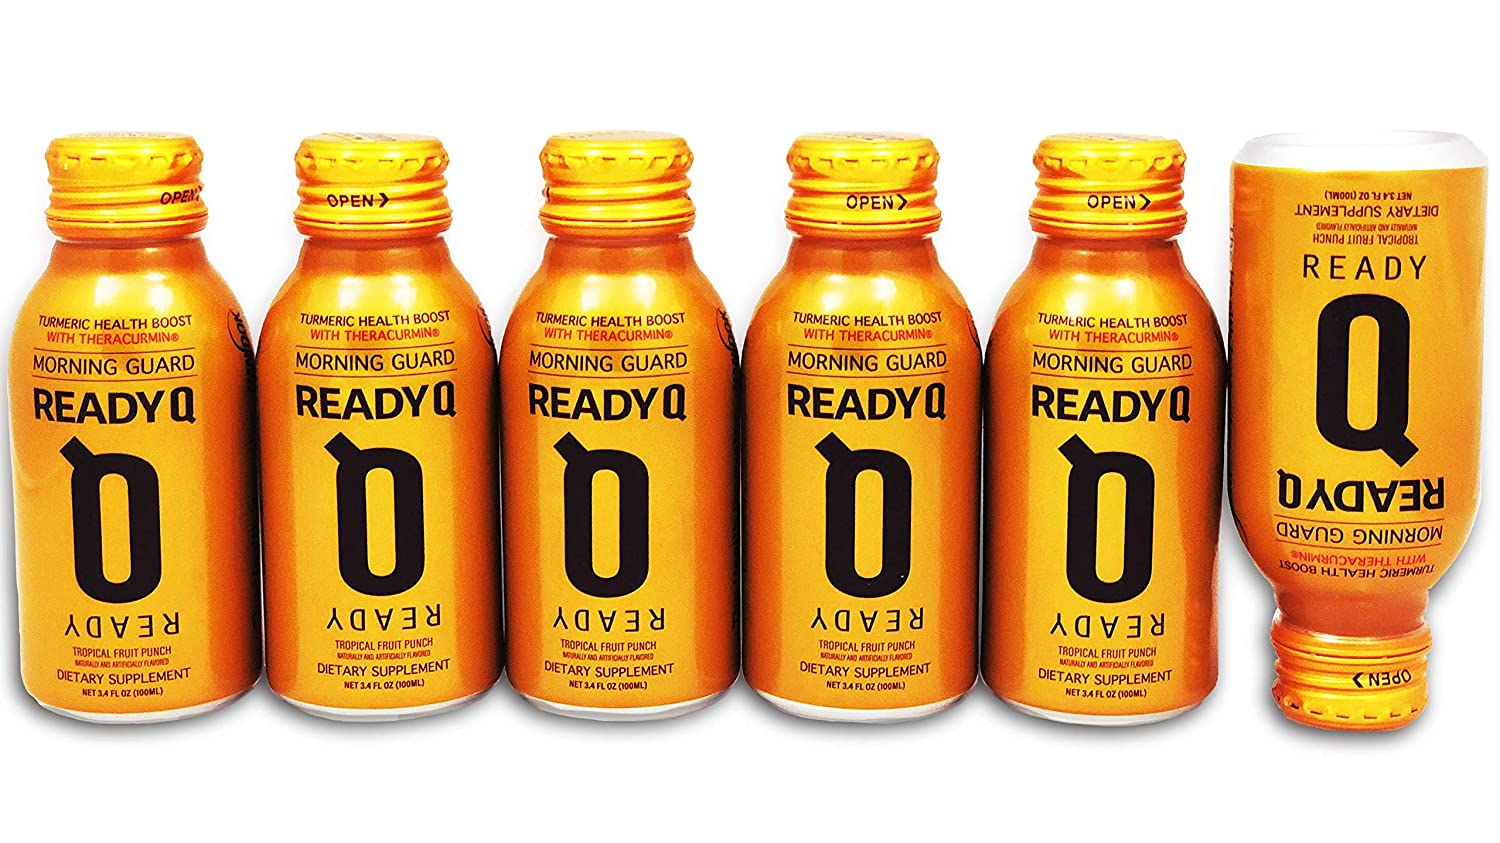 ReadyQ Morning Guard Drink the Night Before to Prevent Morning-After Recovery All Natural, Theracurmin Turmeric Formula 6-Pack Set of 100ml Bottles Mango Peach Flavor